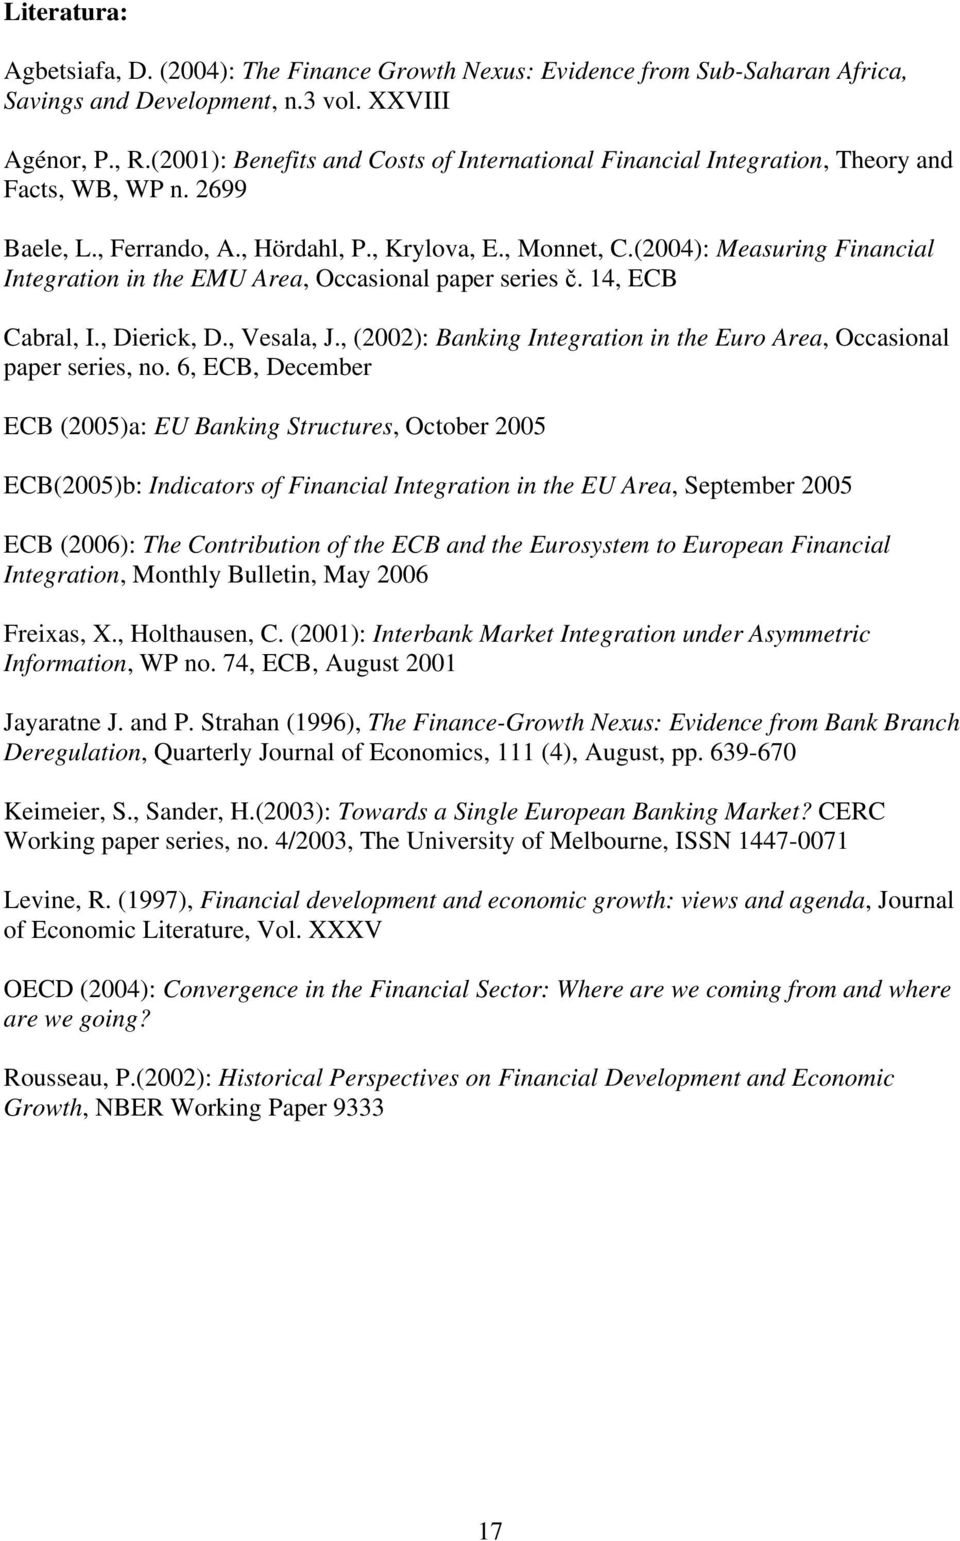 (4): Measuring Financial Integration in the EMU Area, Occasional paper series č. 4, ECB Cabral, I., Dierick, D., Vesala, J., (): Banking Integration in the Euro Area, Occasional paper series, no.